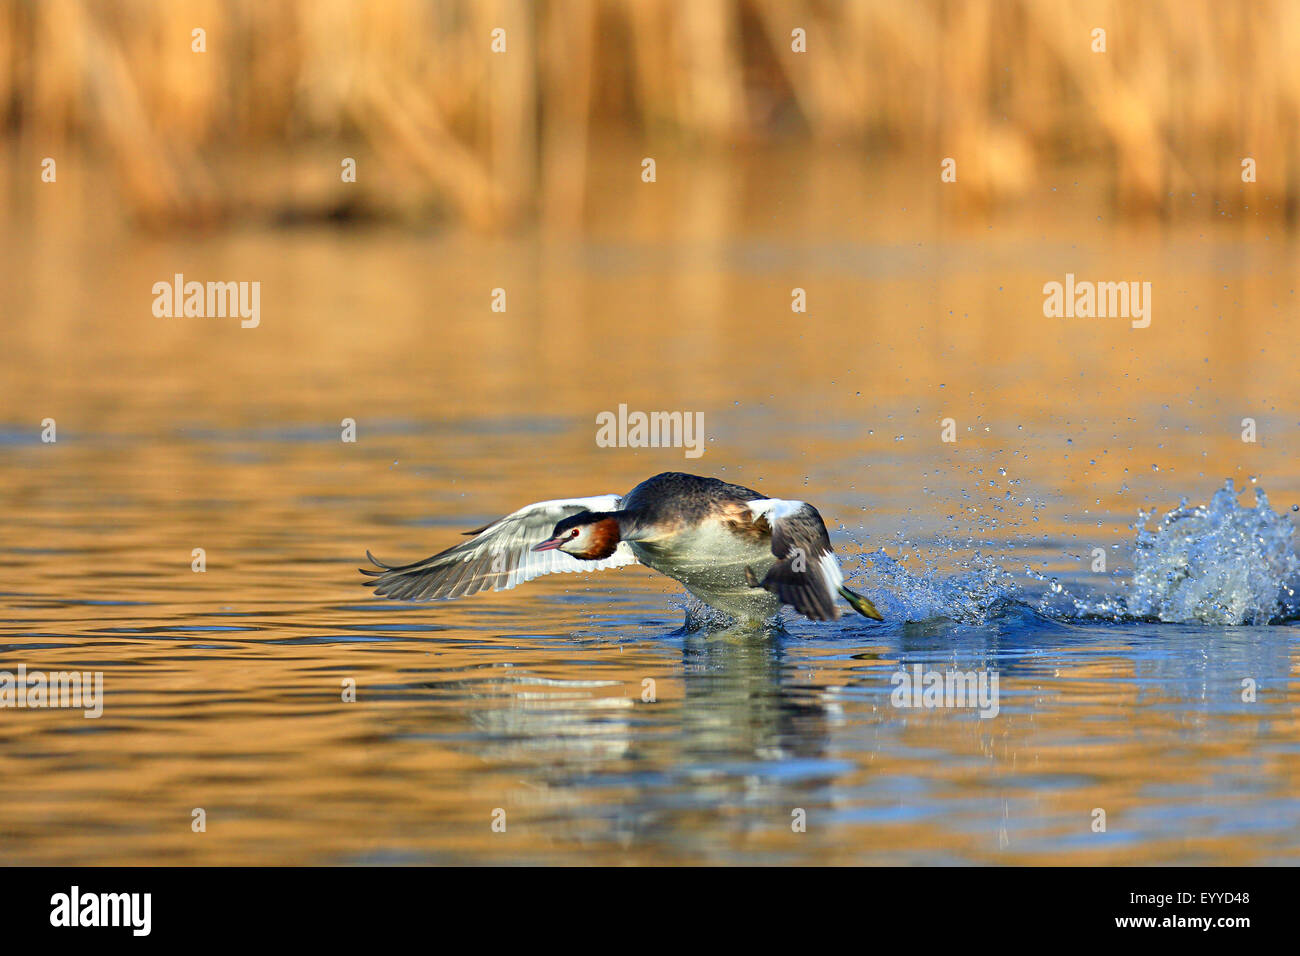 great crested grebe (Podiceps cristatus), flying off from the water, Netherlands, Frisia - Stock Image